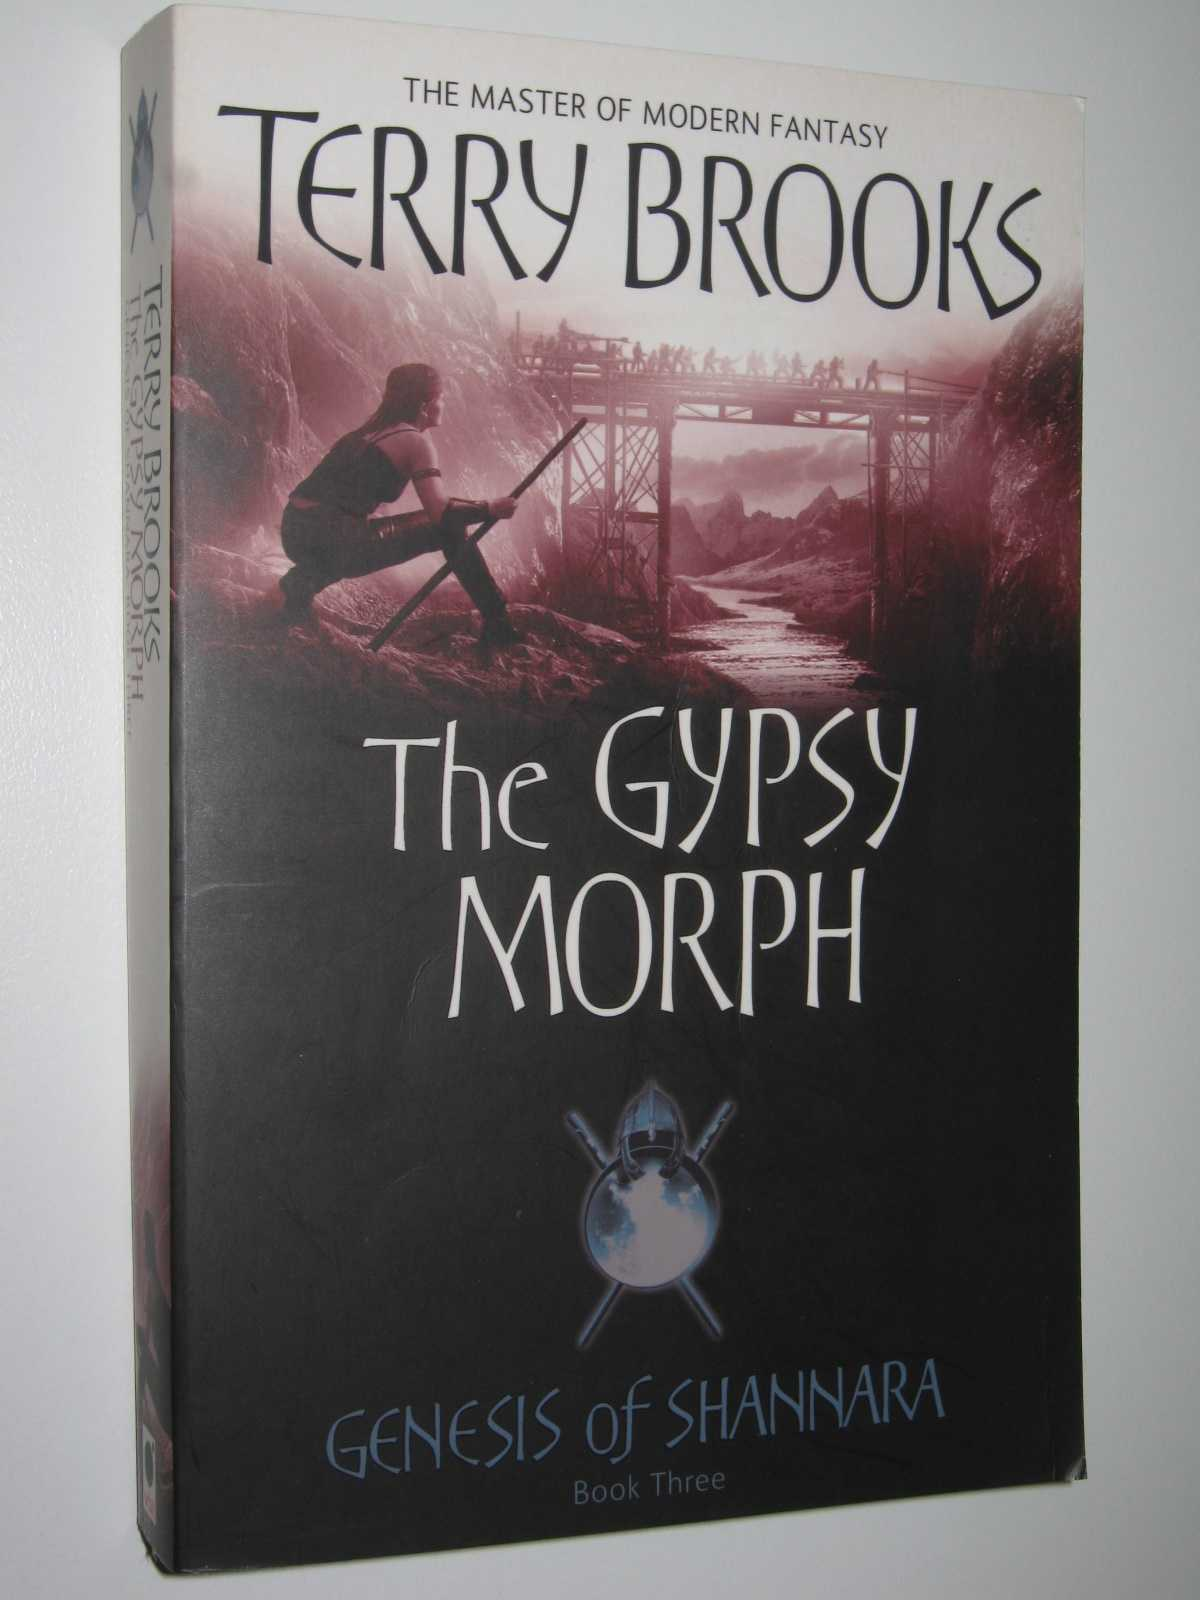 Image for The Gypsy Morph - Genesis of Shannara Series #3